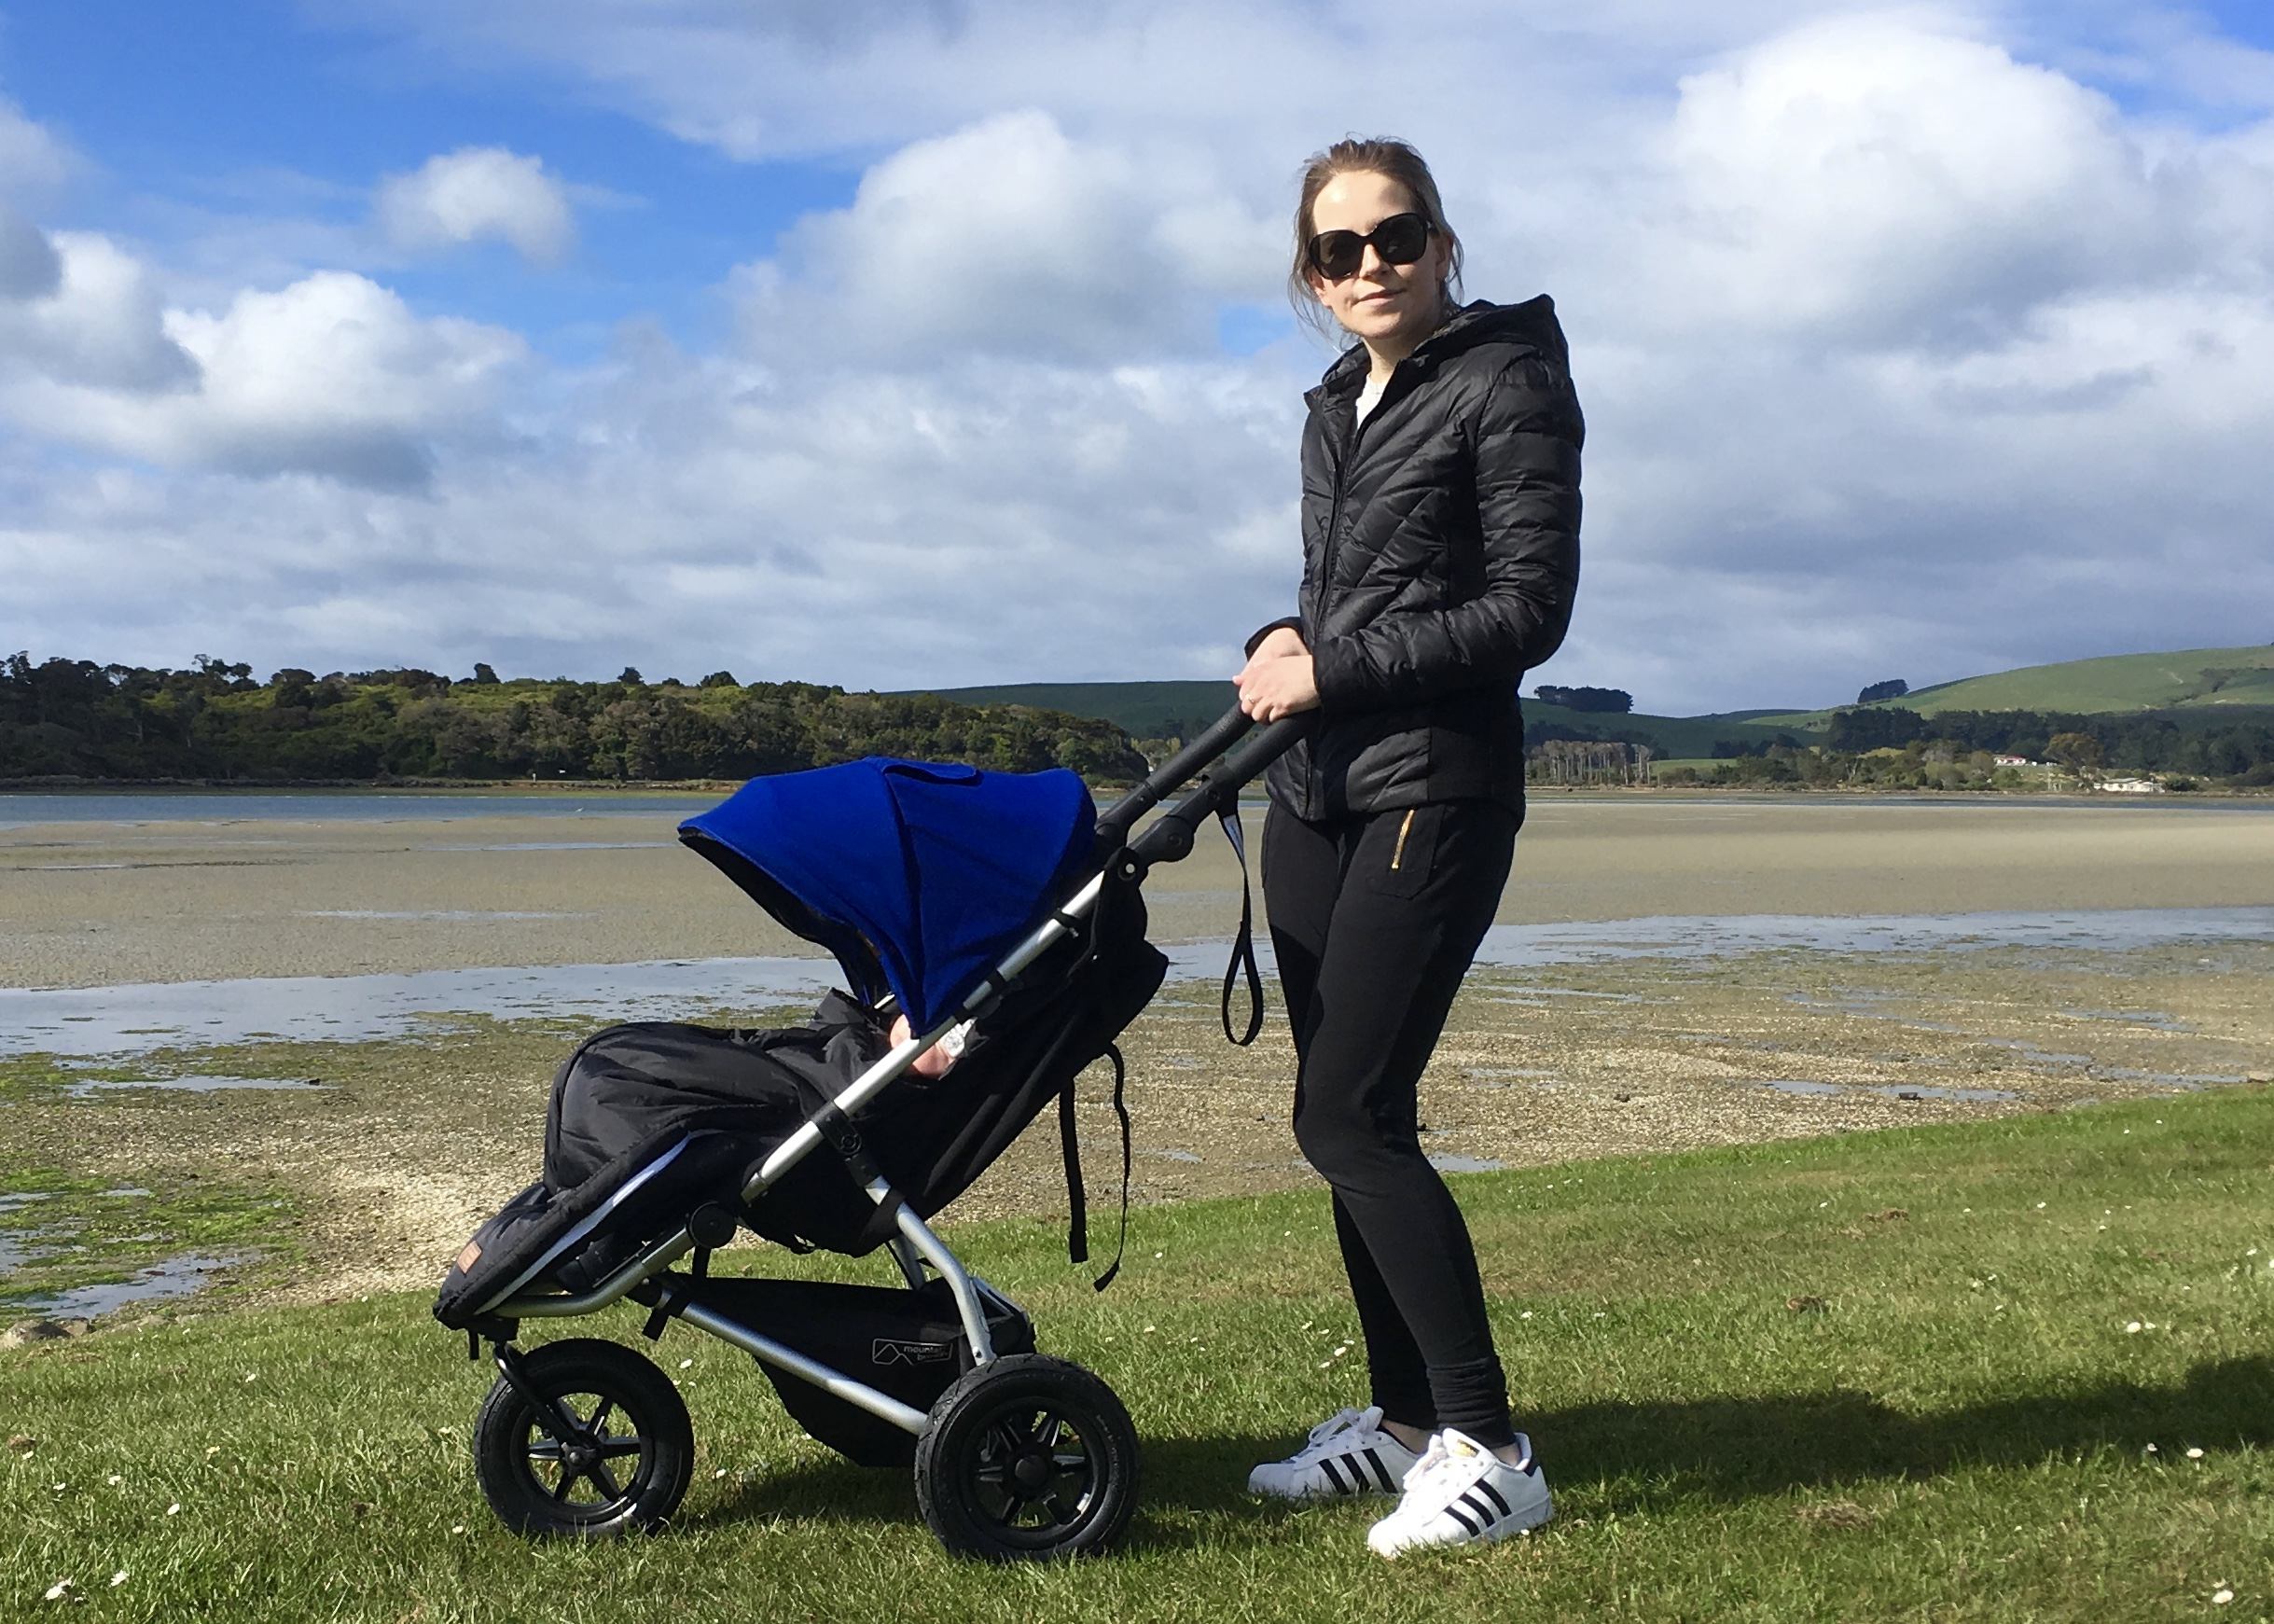 Newborn Baby Buggy Reviews How We Picked A Stroller The Mountain Buggy Swift Review